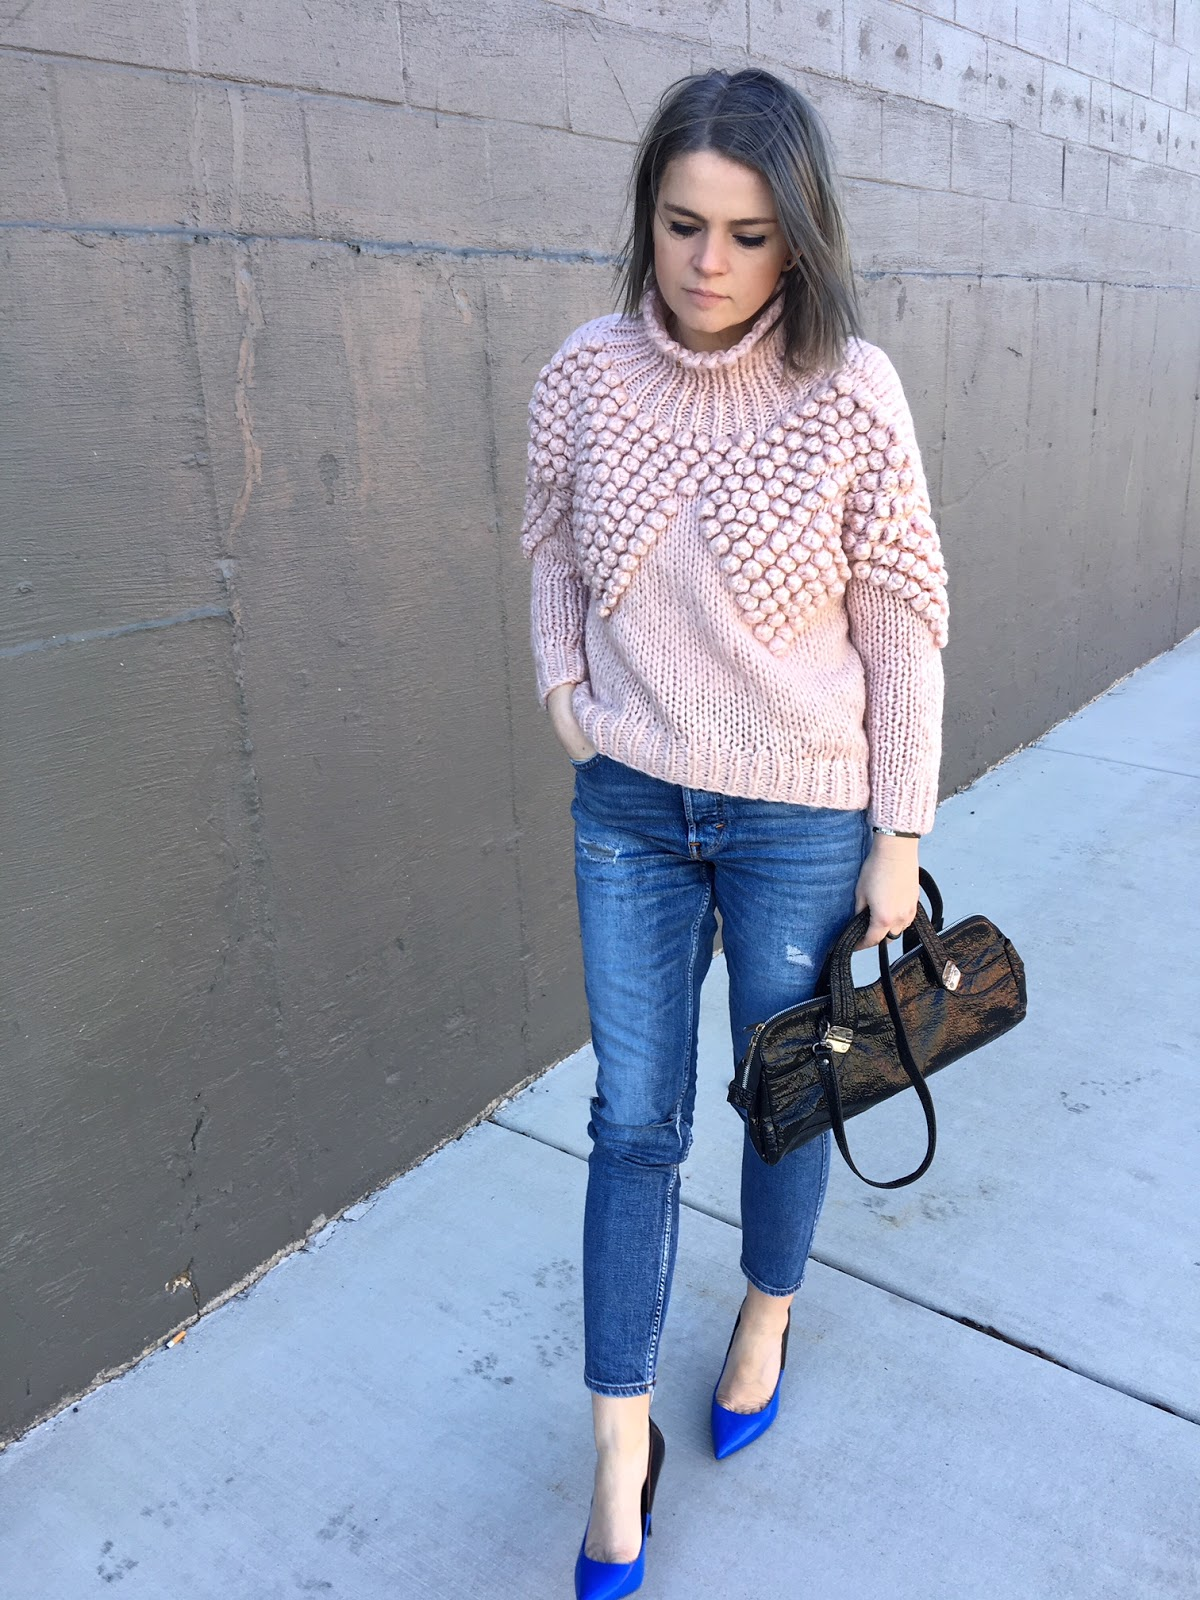 Blue patent leather pumps & Chicwish sweater